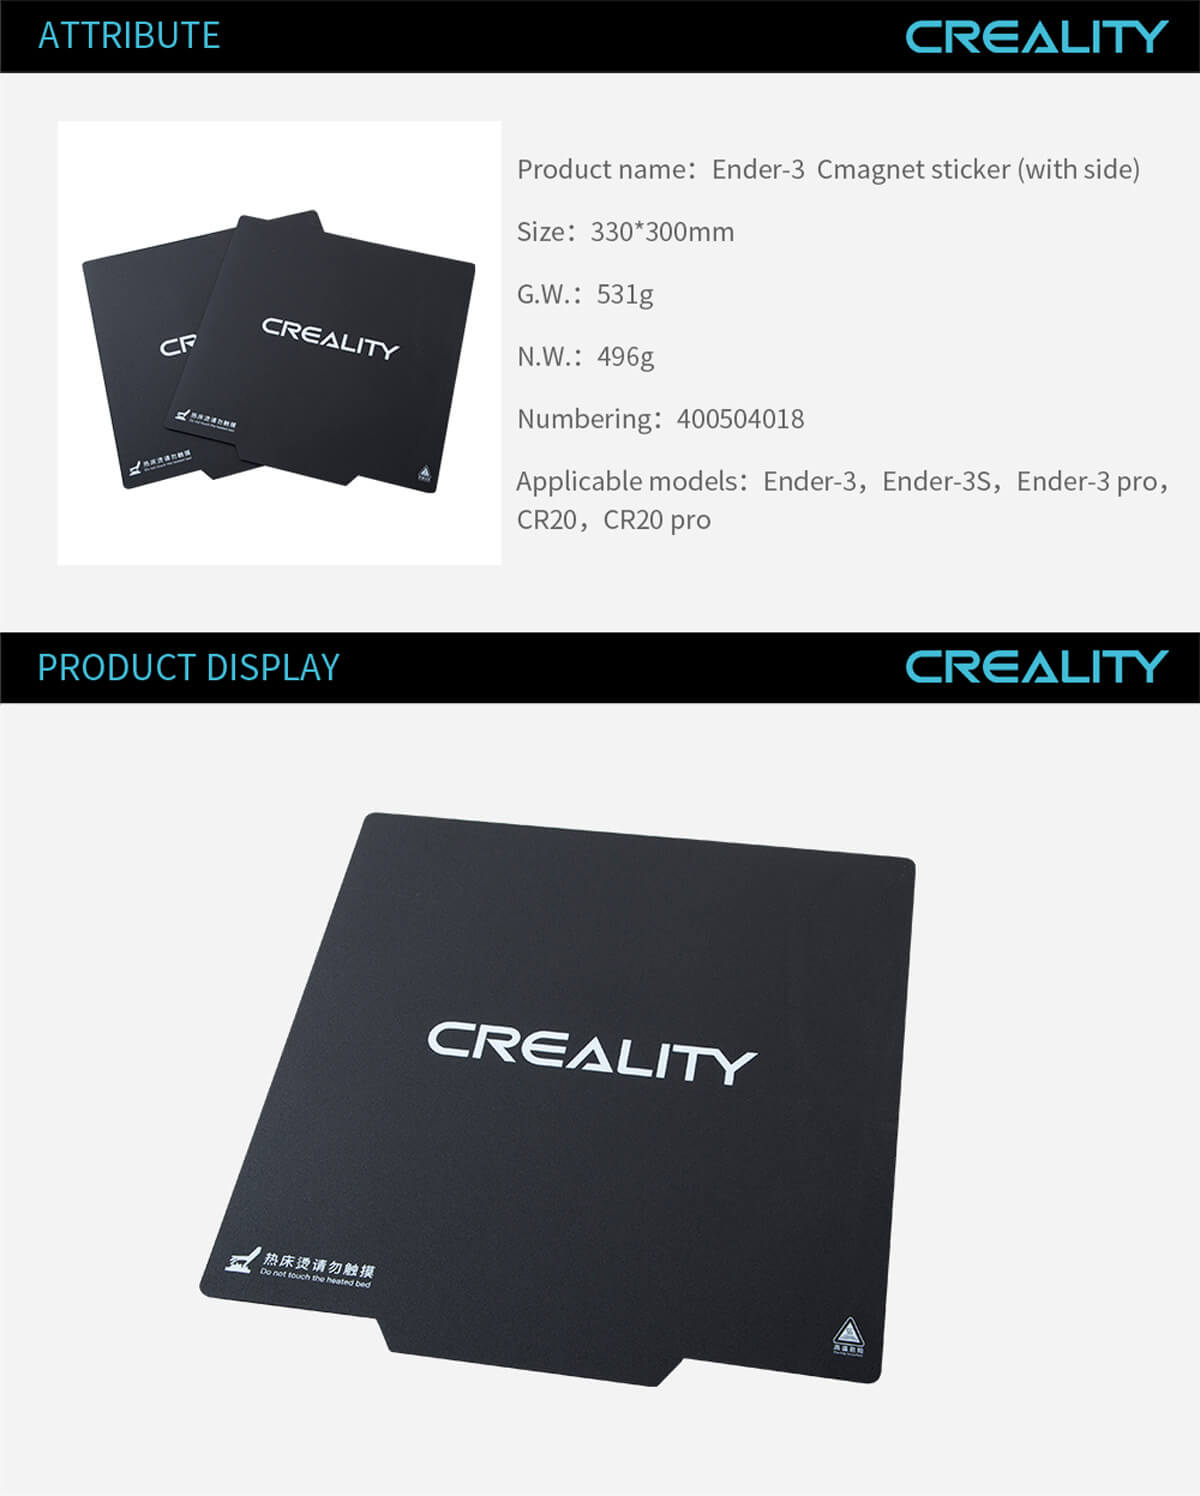 creality-3d-printer-Ender-3-Cmagnet-Sticker-(with side)-11